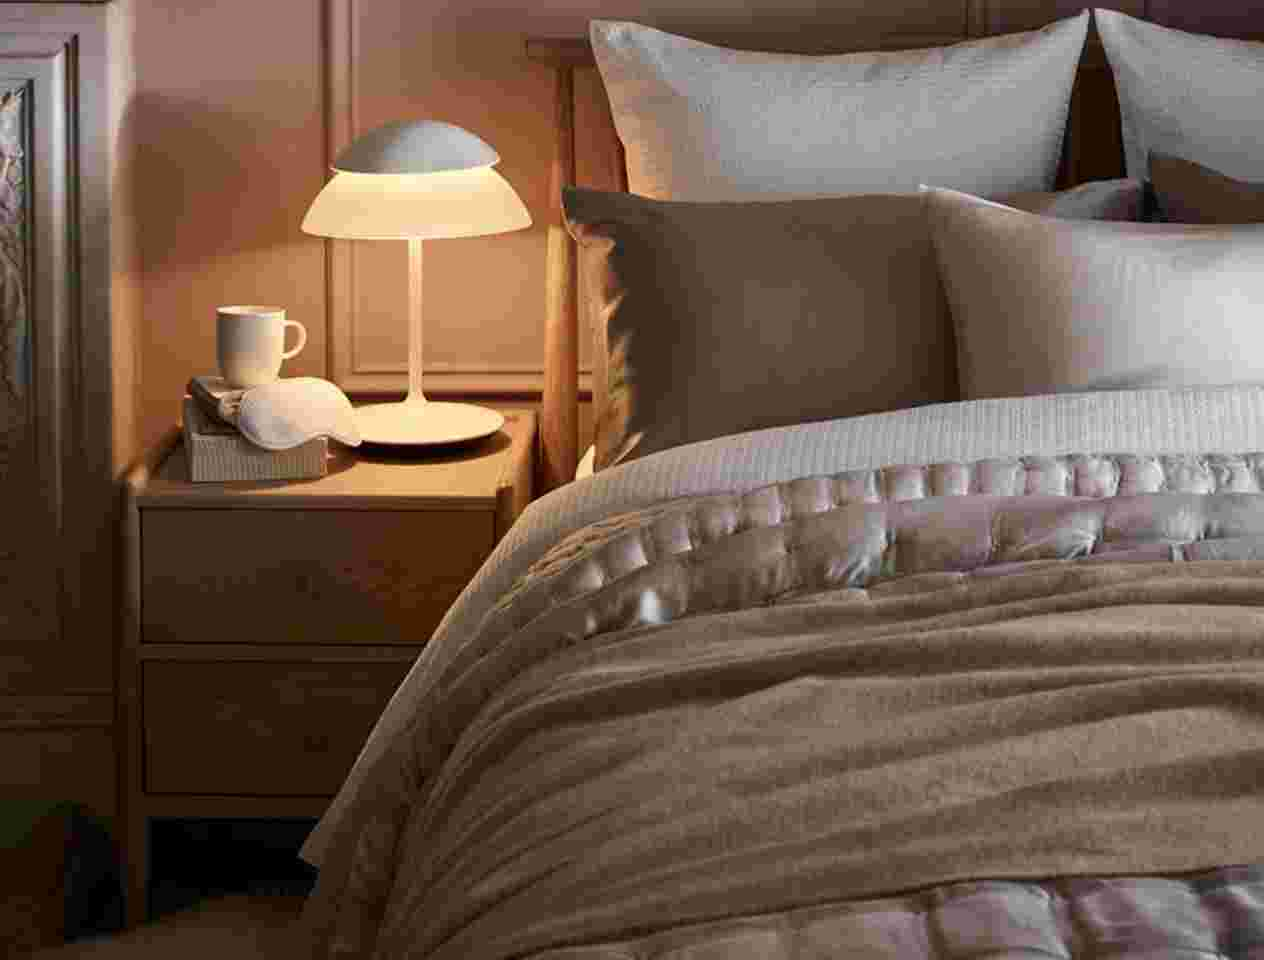 How to turn your spare room into a cosy retreat for guests